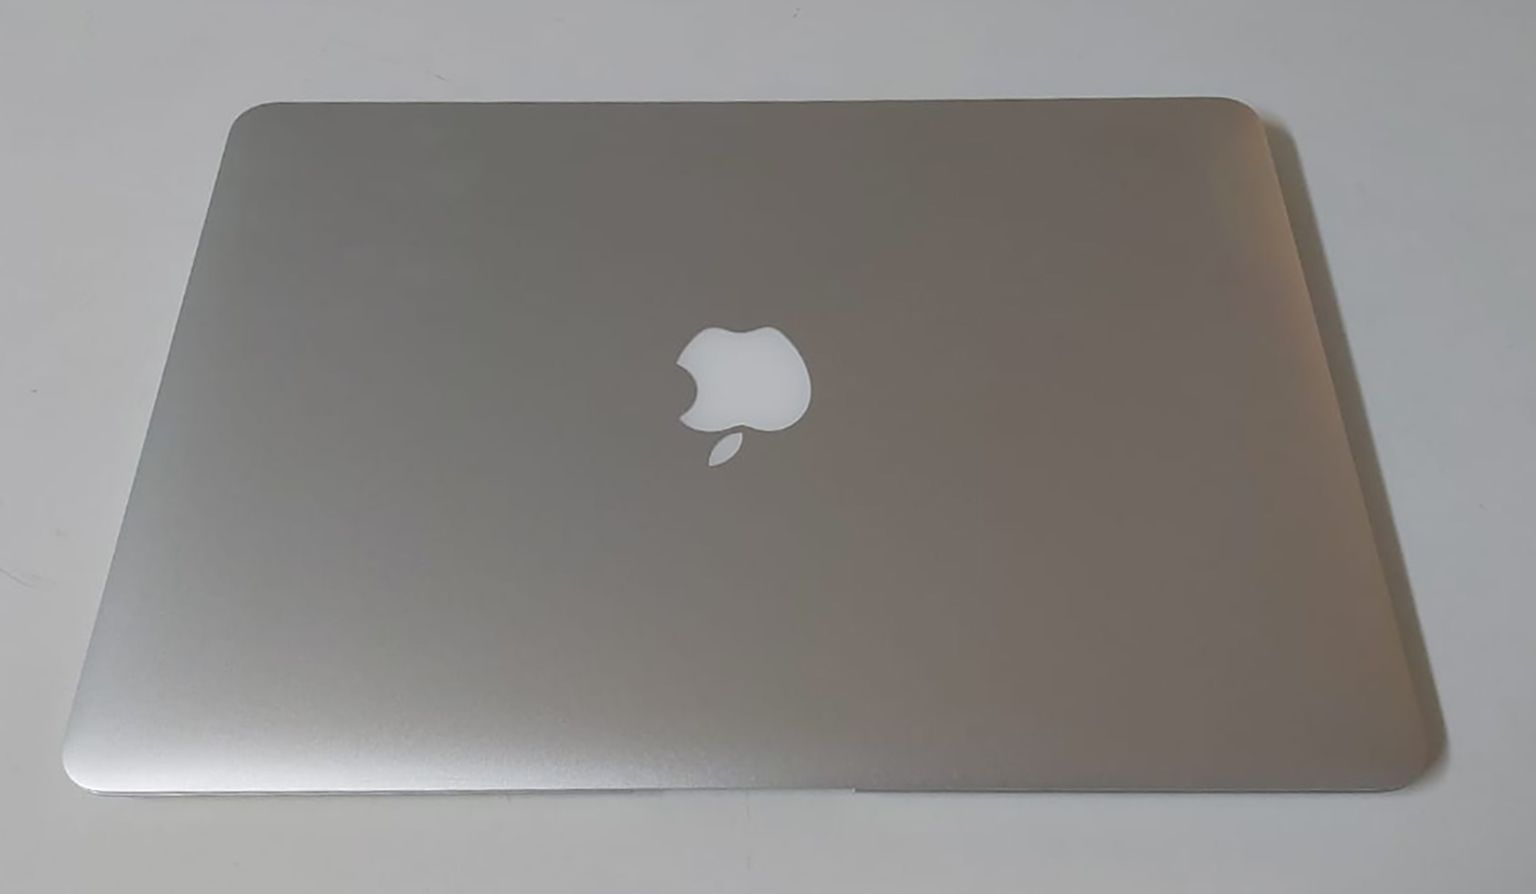 "Macbook Air MJVE2LL/A 13.3"" Intel Core i5 1.6GHz 4GB SSD-128GB"